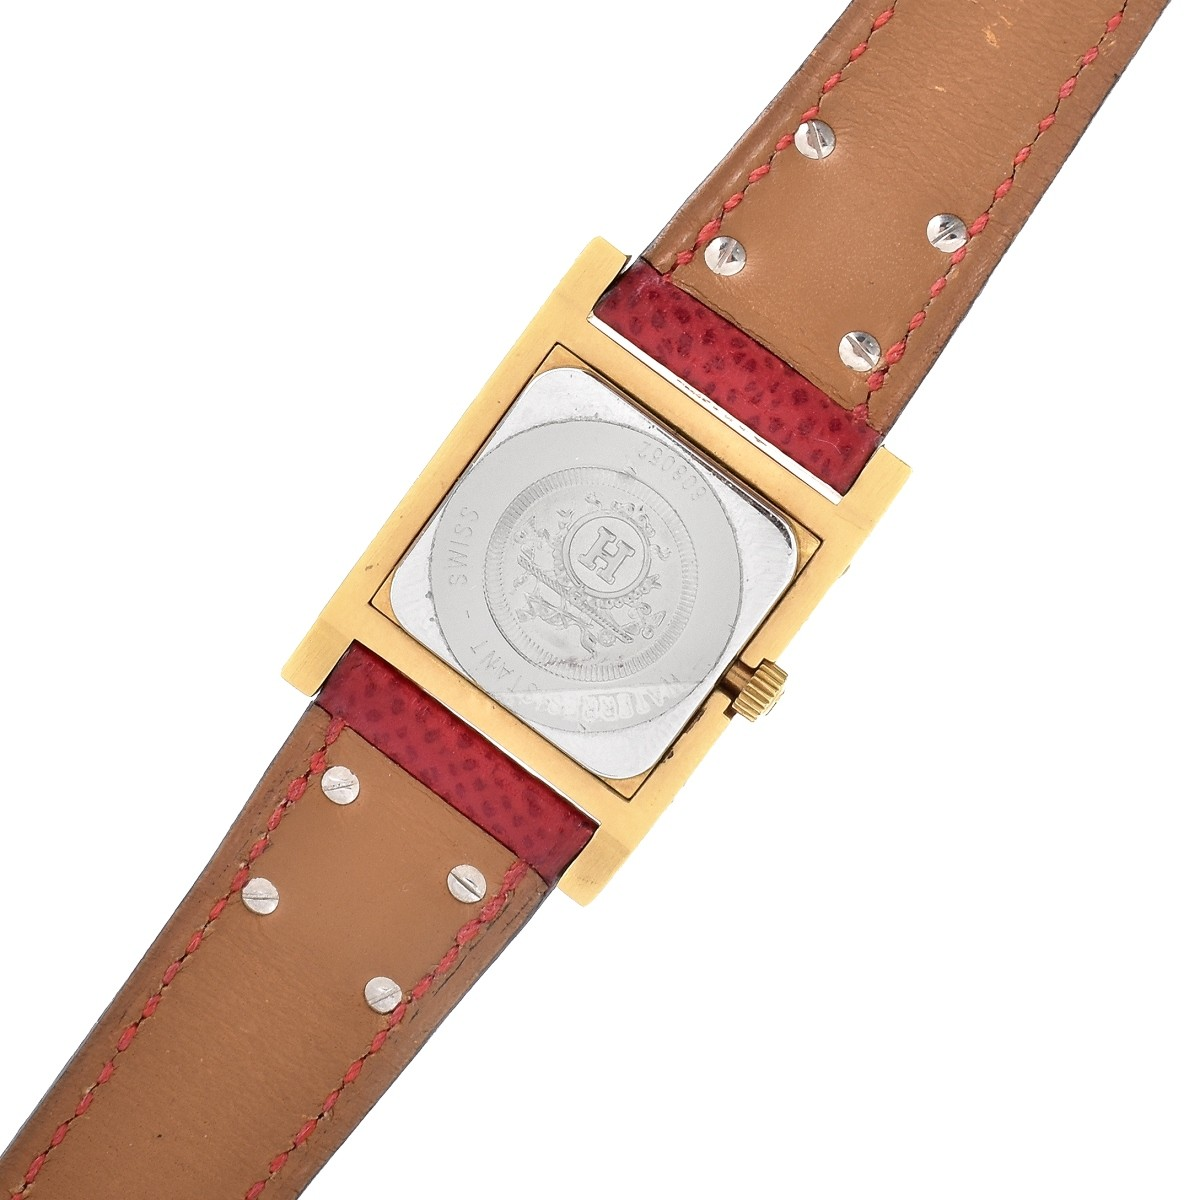 Hermes Medor Watch